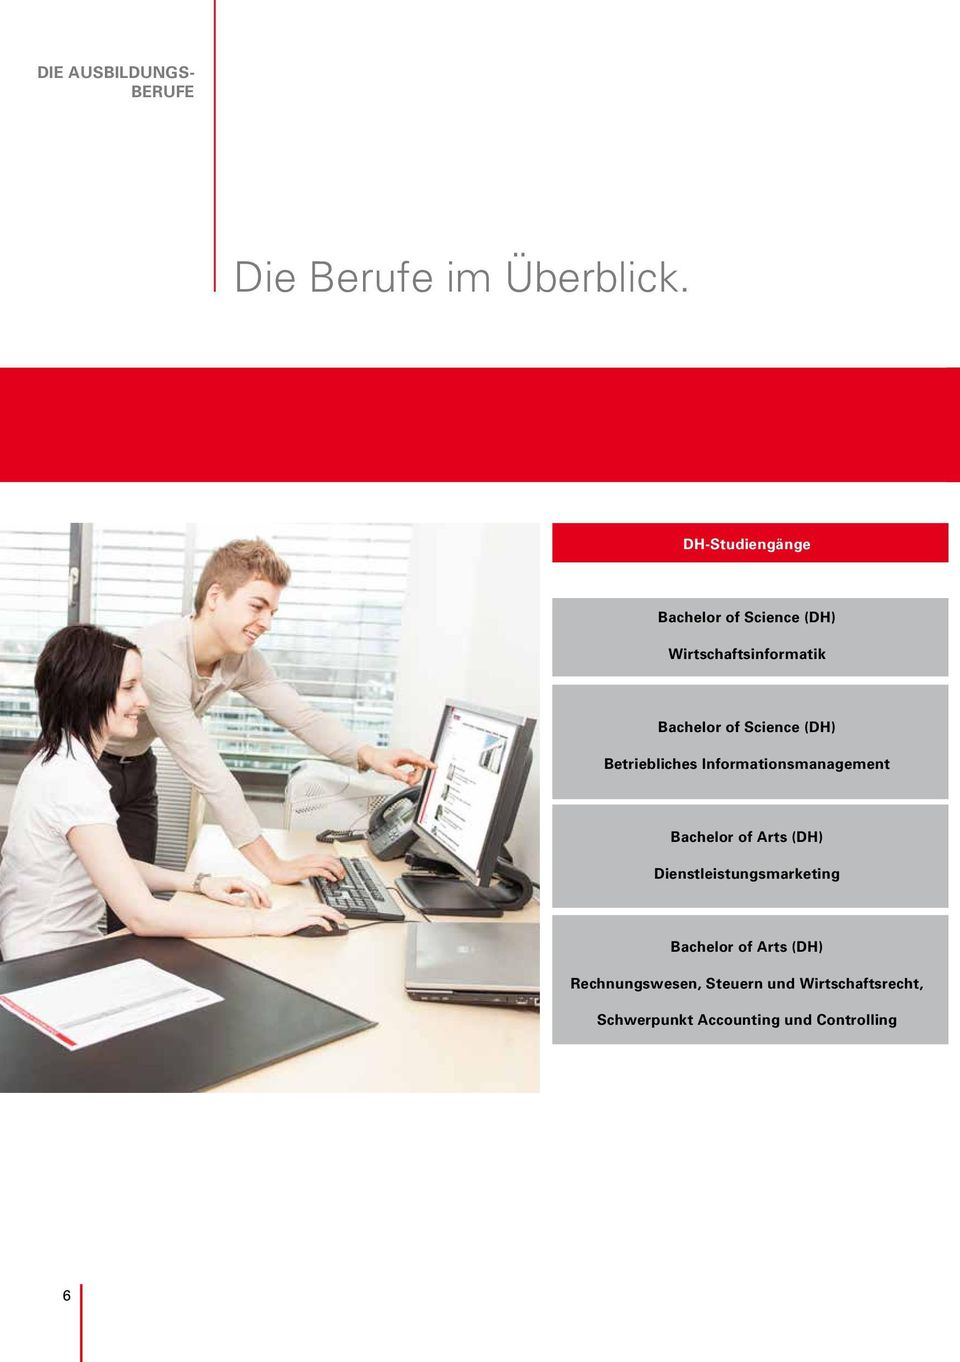 (DH) Betriebliches Informationsmanagement Bachelor of Arts (DH)